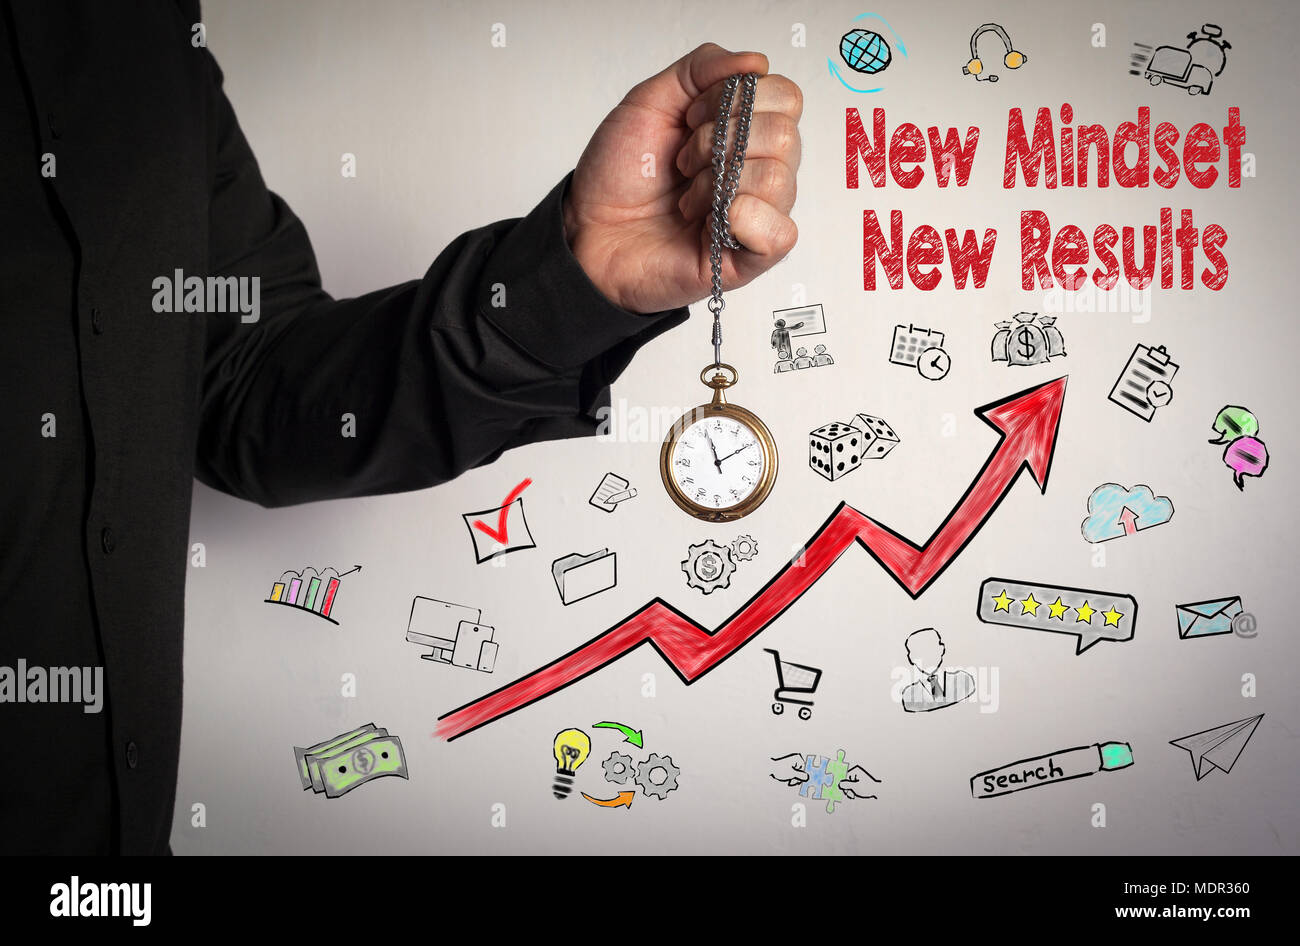 New Mindset New Results concept. Red Arrow and Icons Around - Stock Image